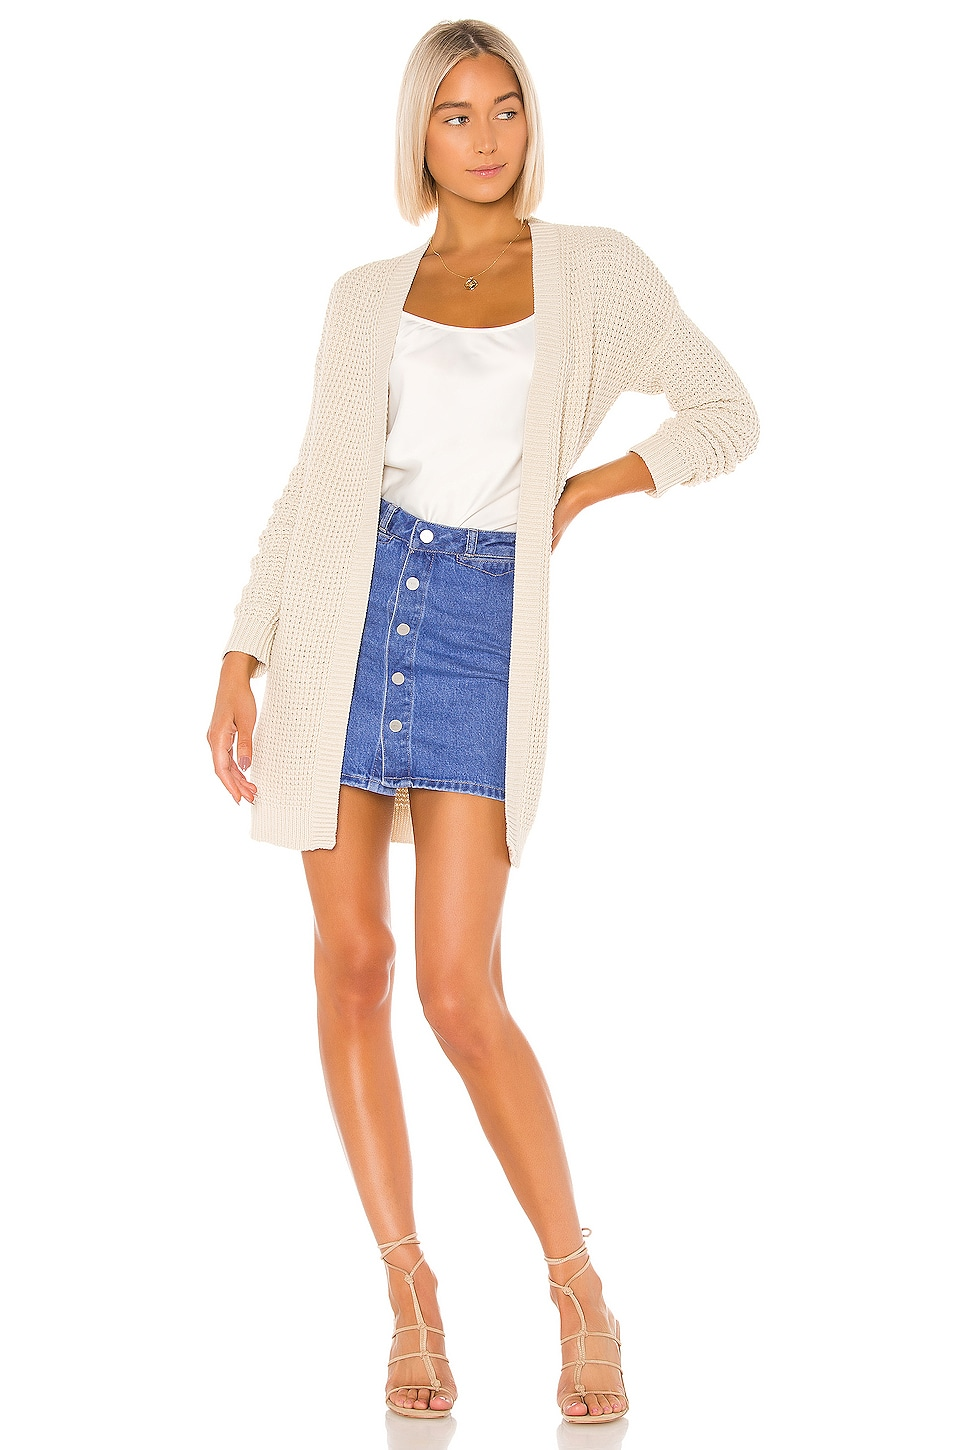 Lovers + Friends Alyn Cardigan in Sand